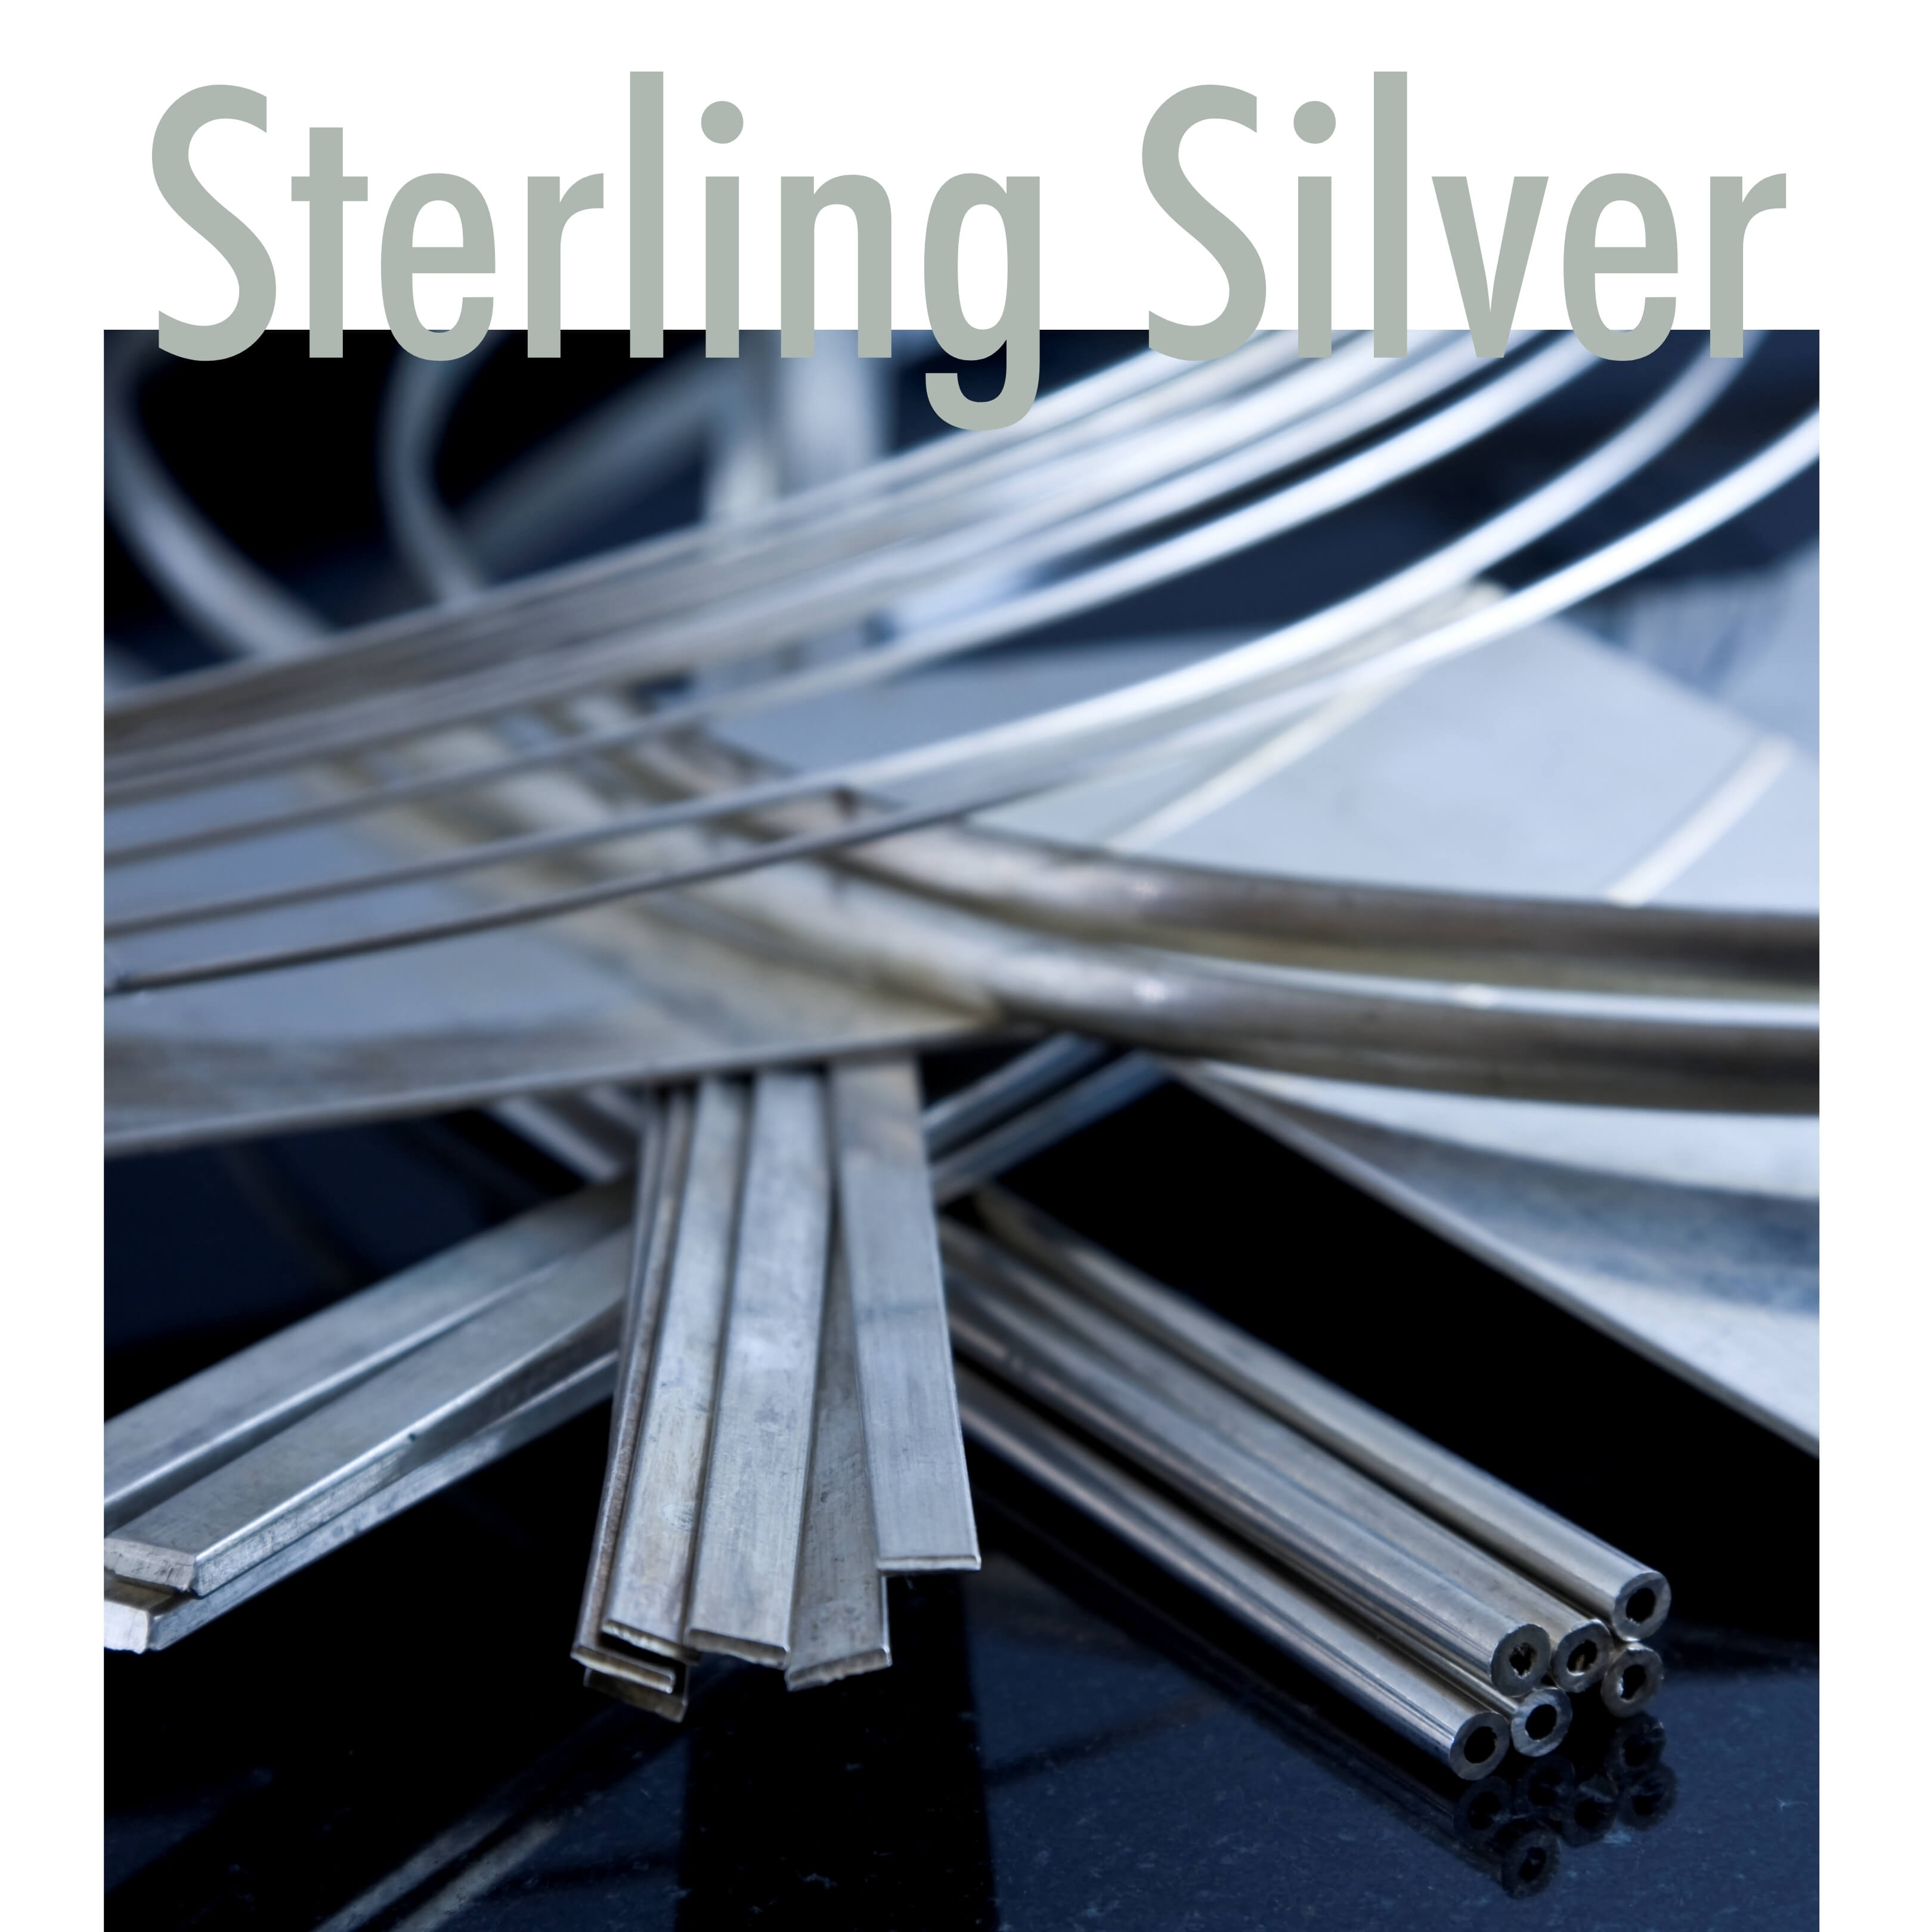 Sterling Silver metal made up of what? Alloy